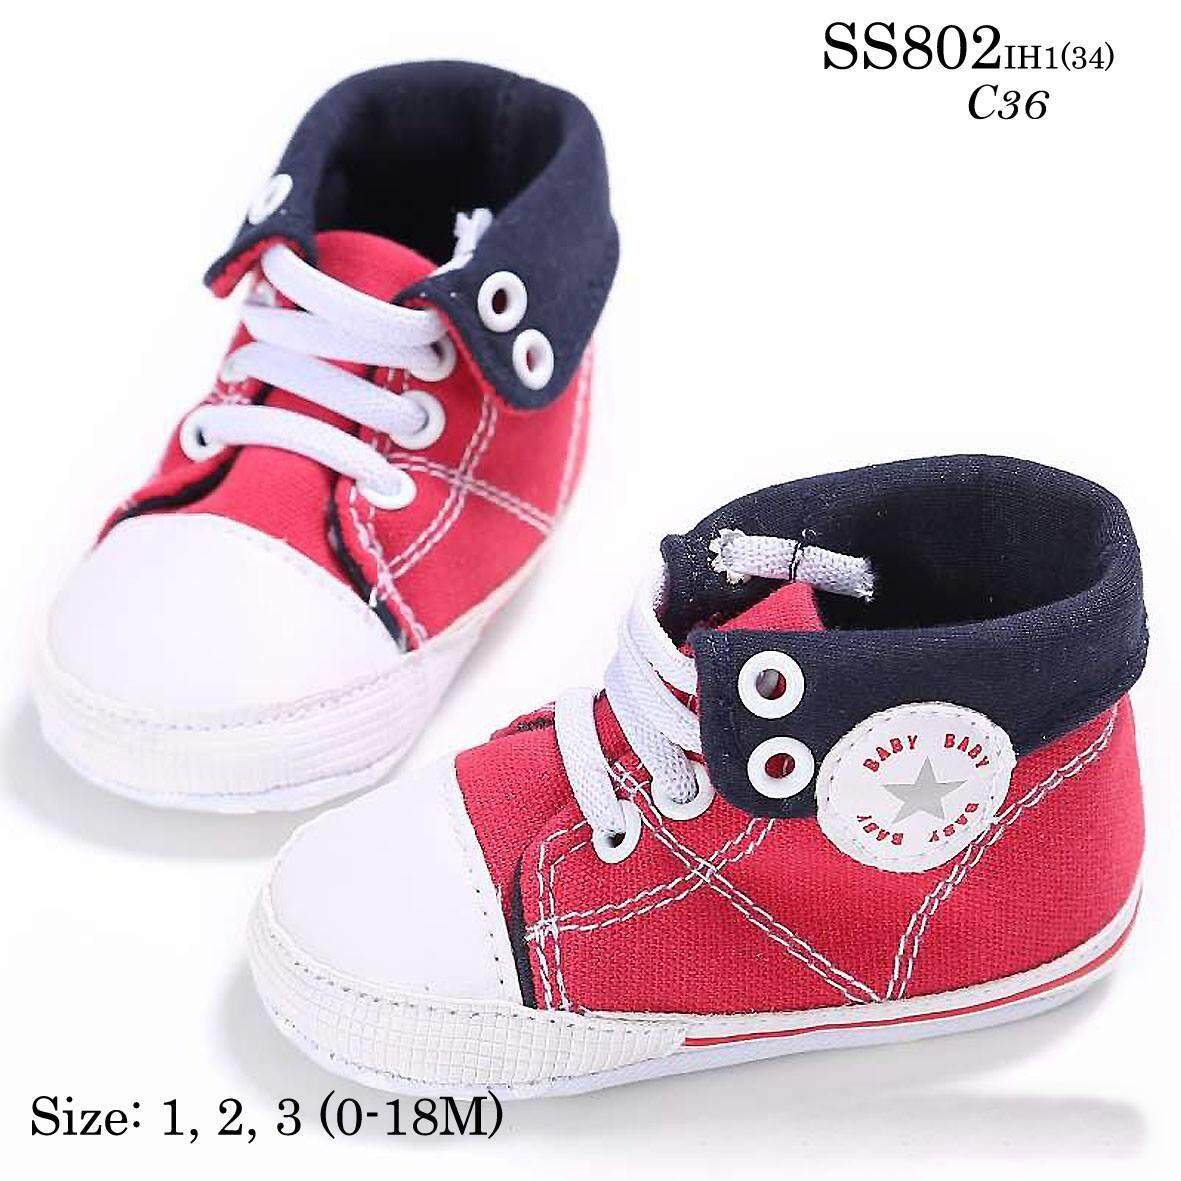 e6ef25138265 Converse Sneakers for the Best Price in Malaysia